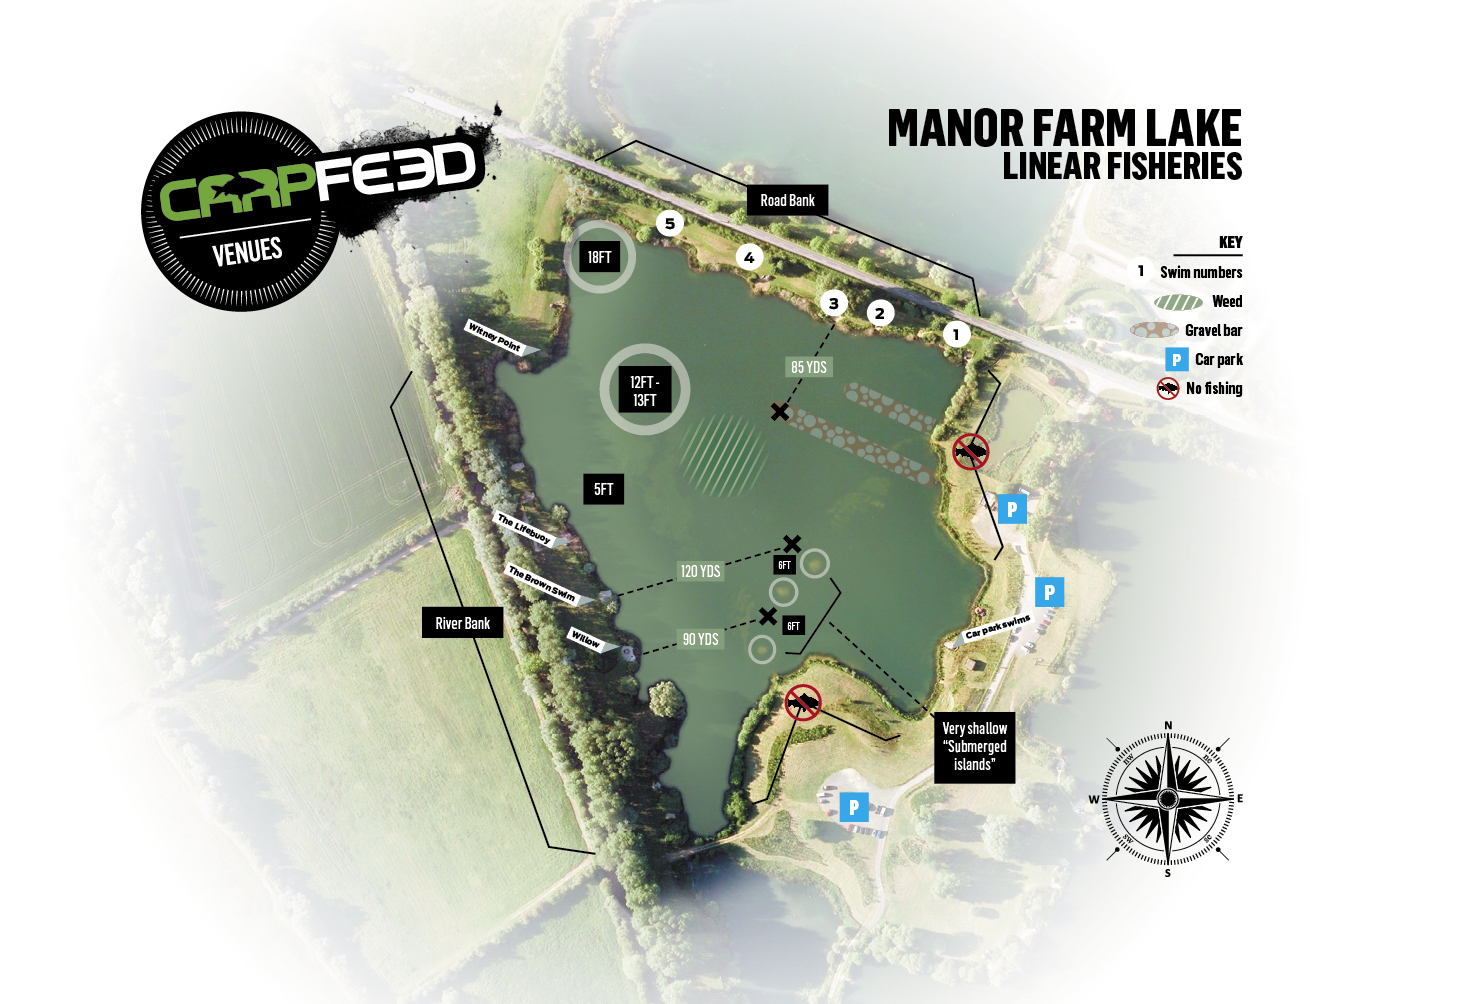 Zak fish peg 4. CLICK THE MAP FOR OUR FULL VENUE GUIDE